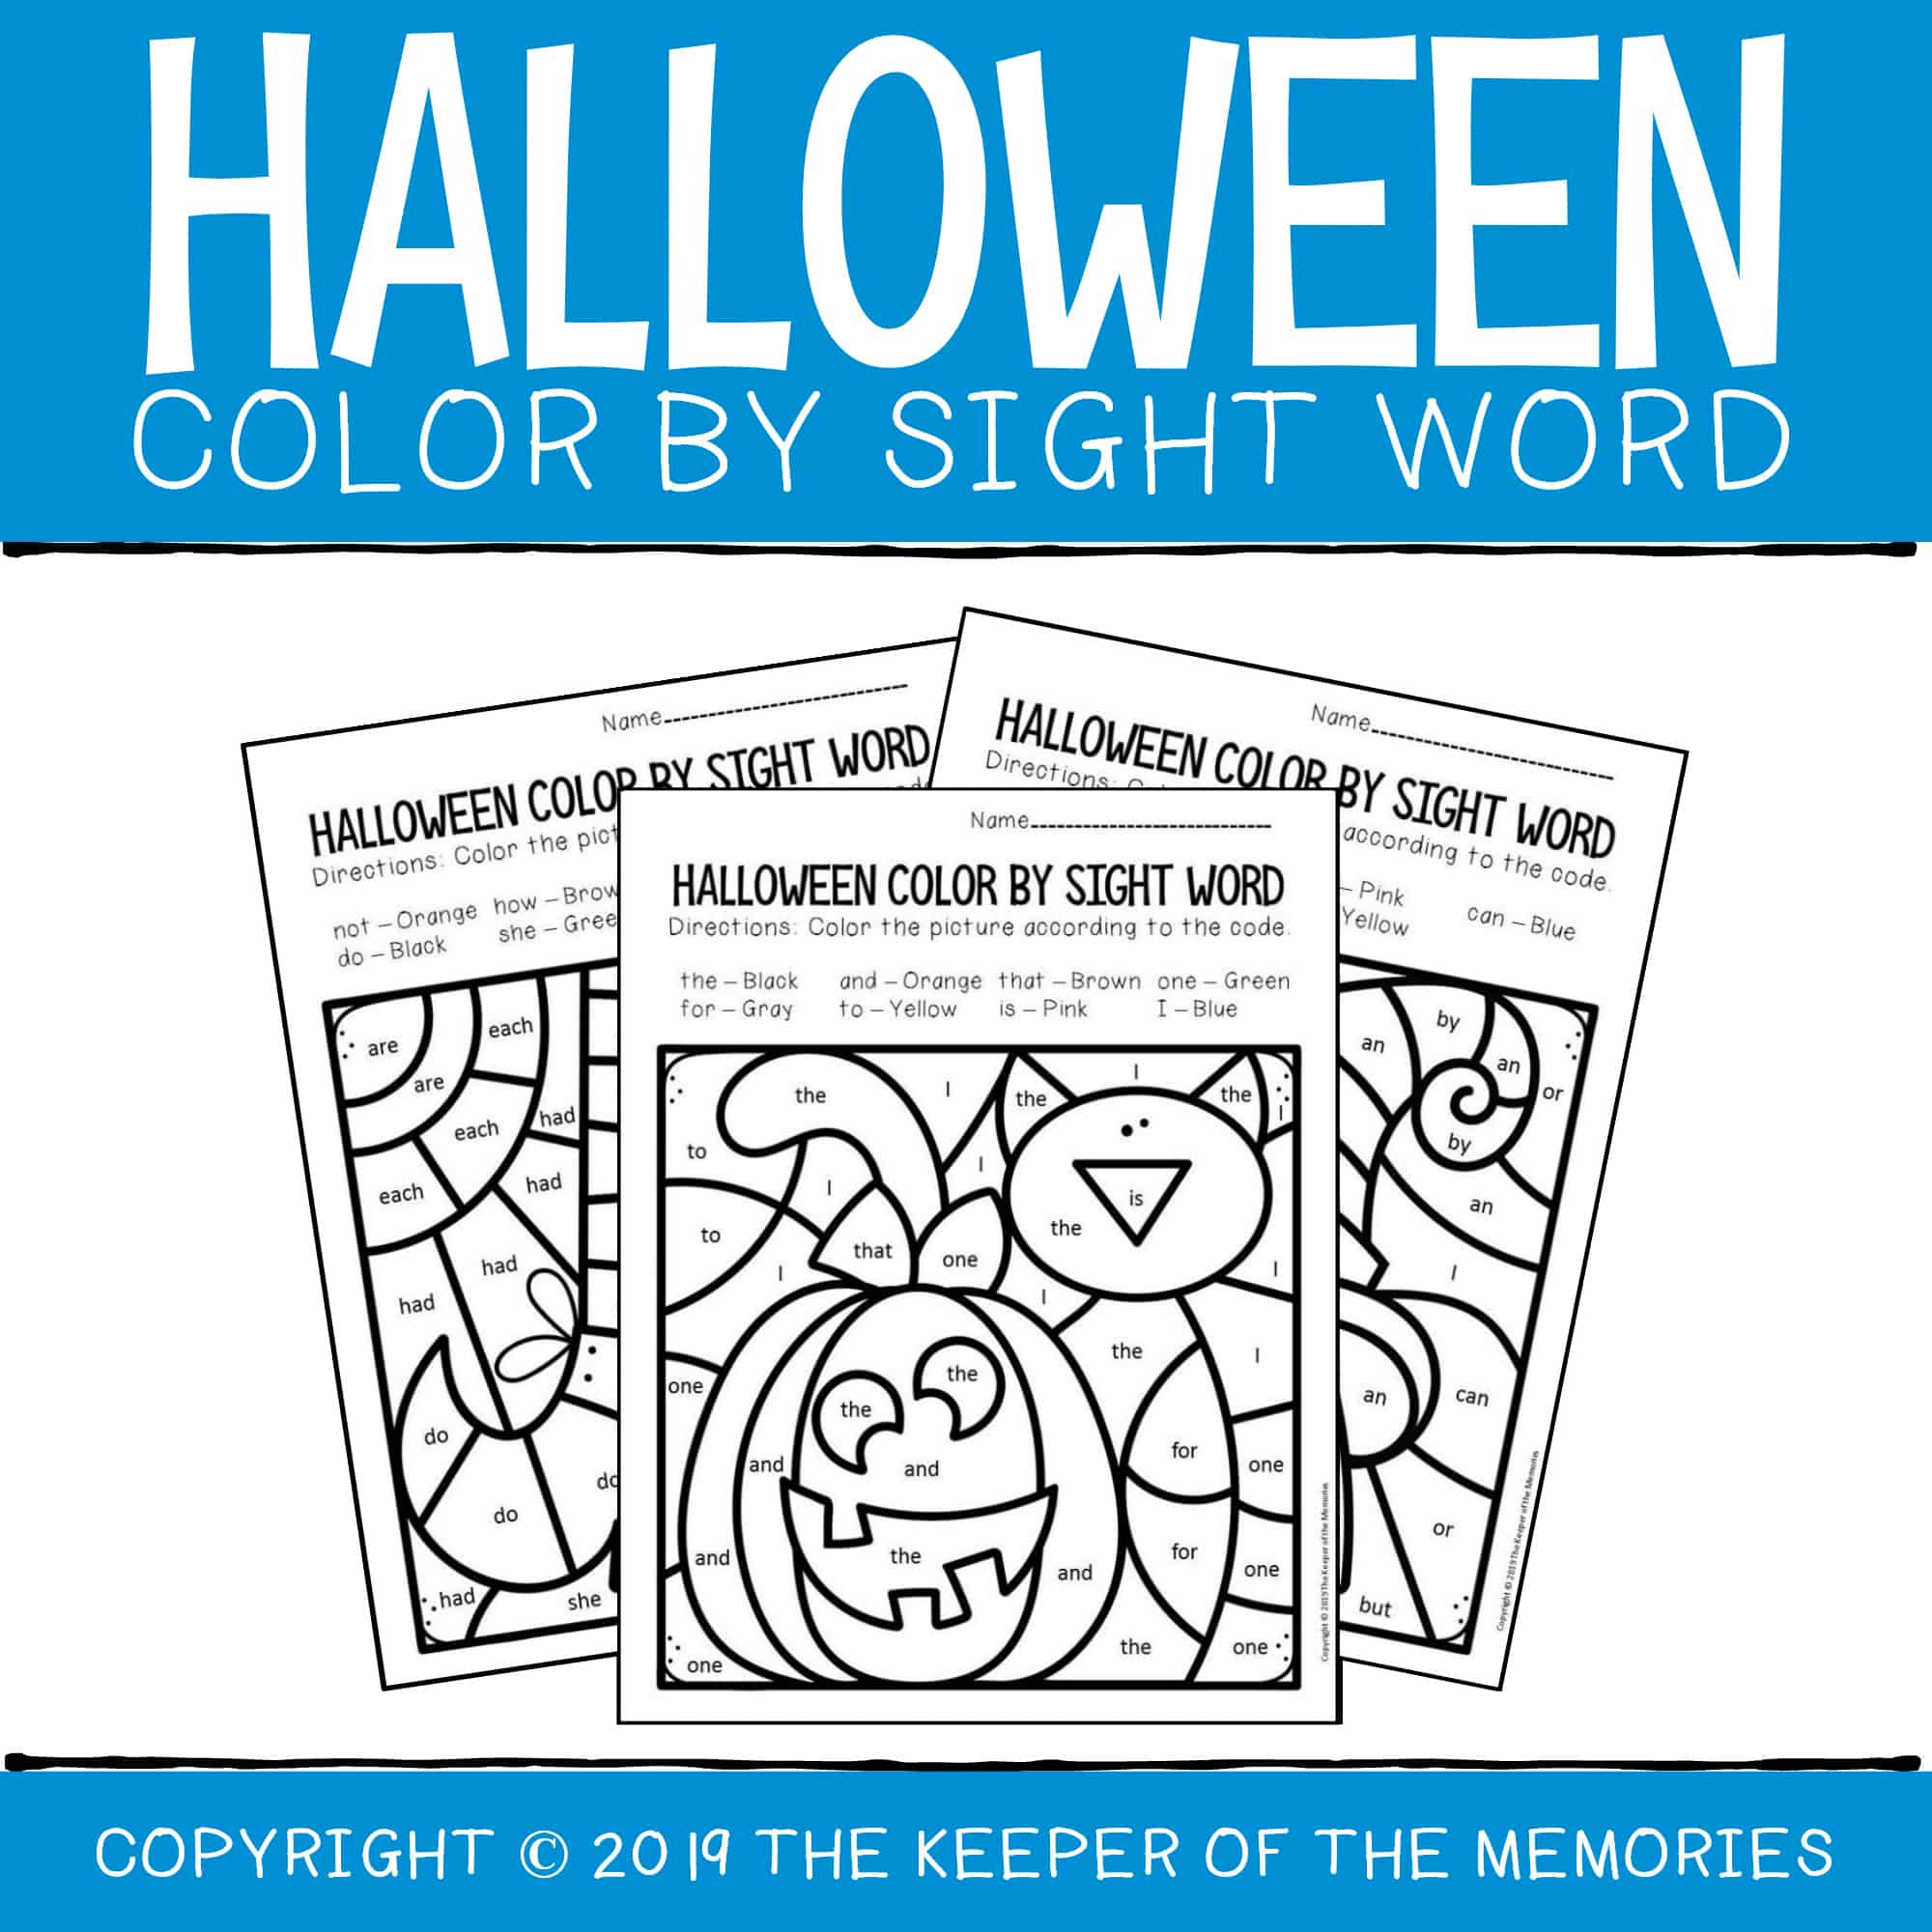 Color By Sight Word Halloween Coloring Pages - The Keeper ...